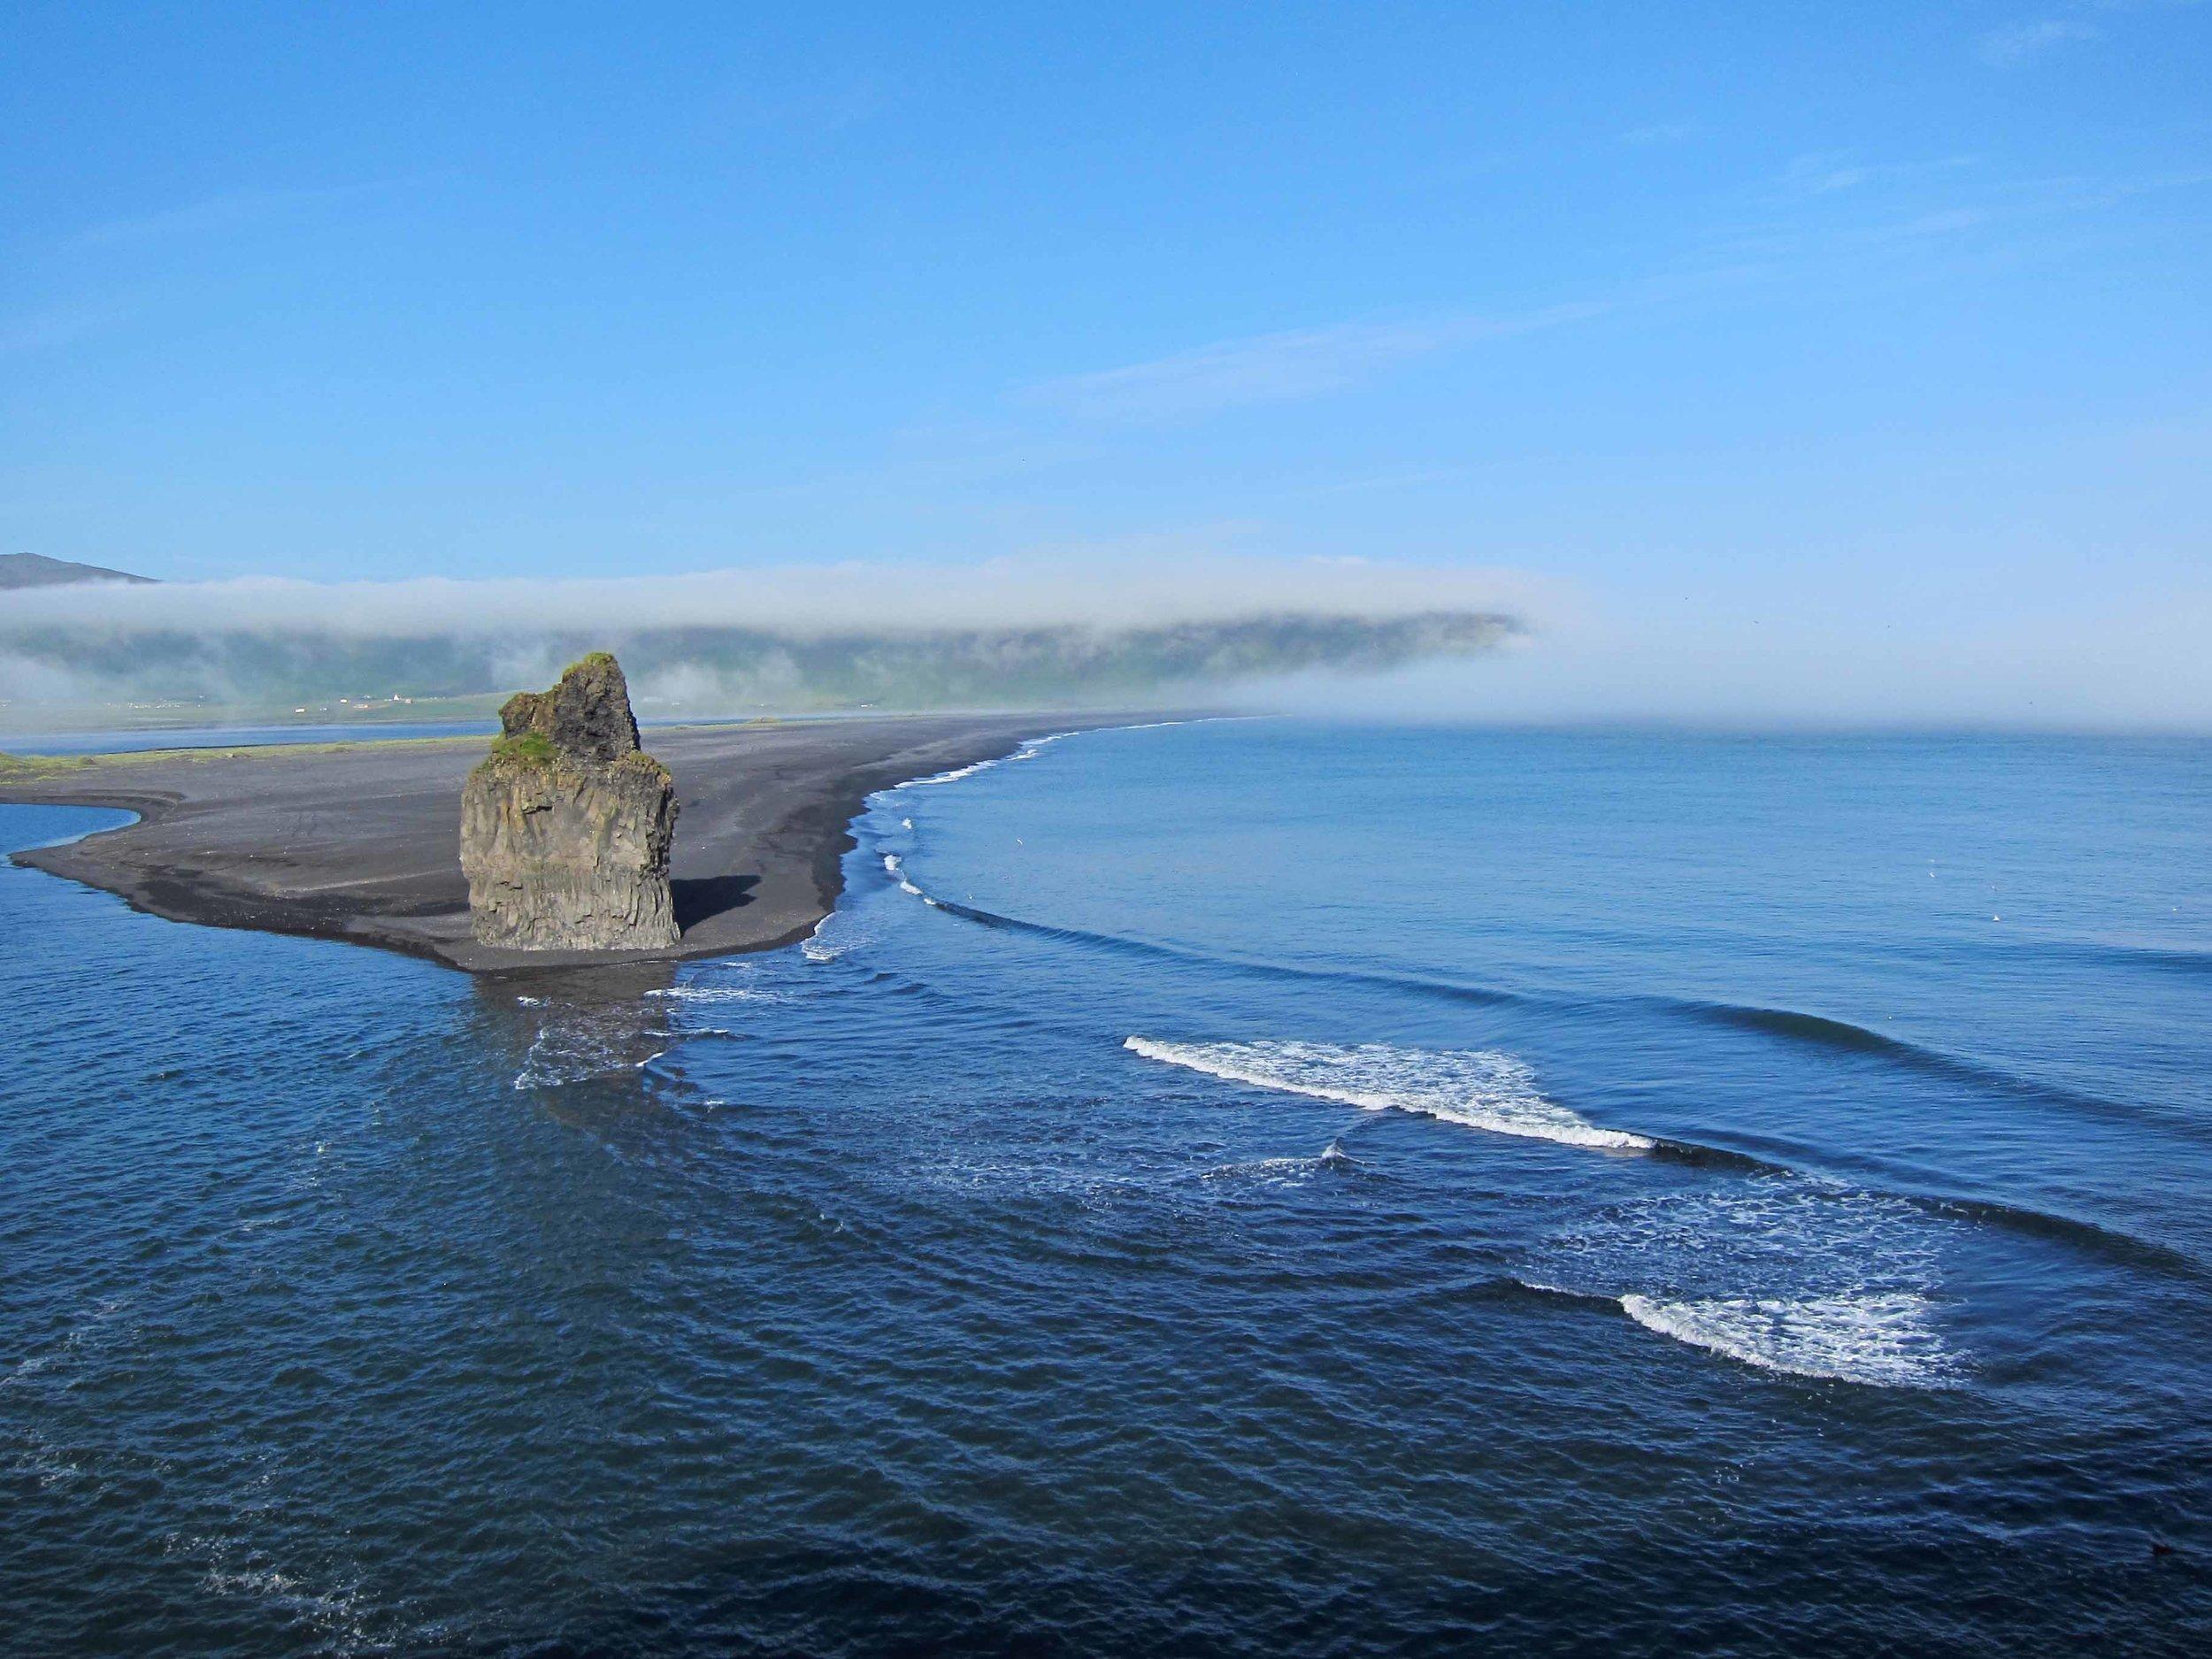 Black Sand Beach at Vík í Mýrdal